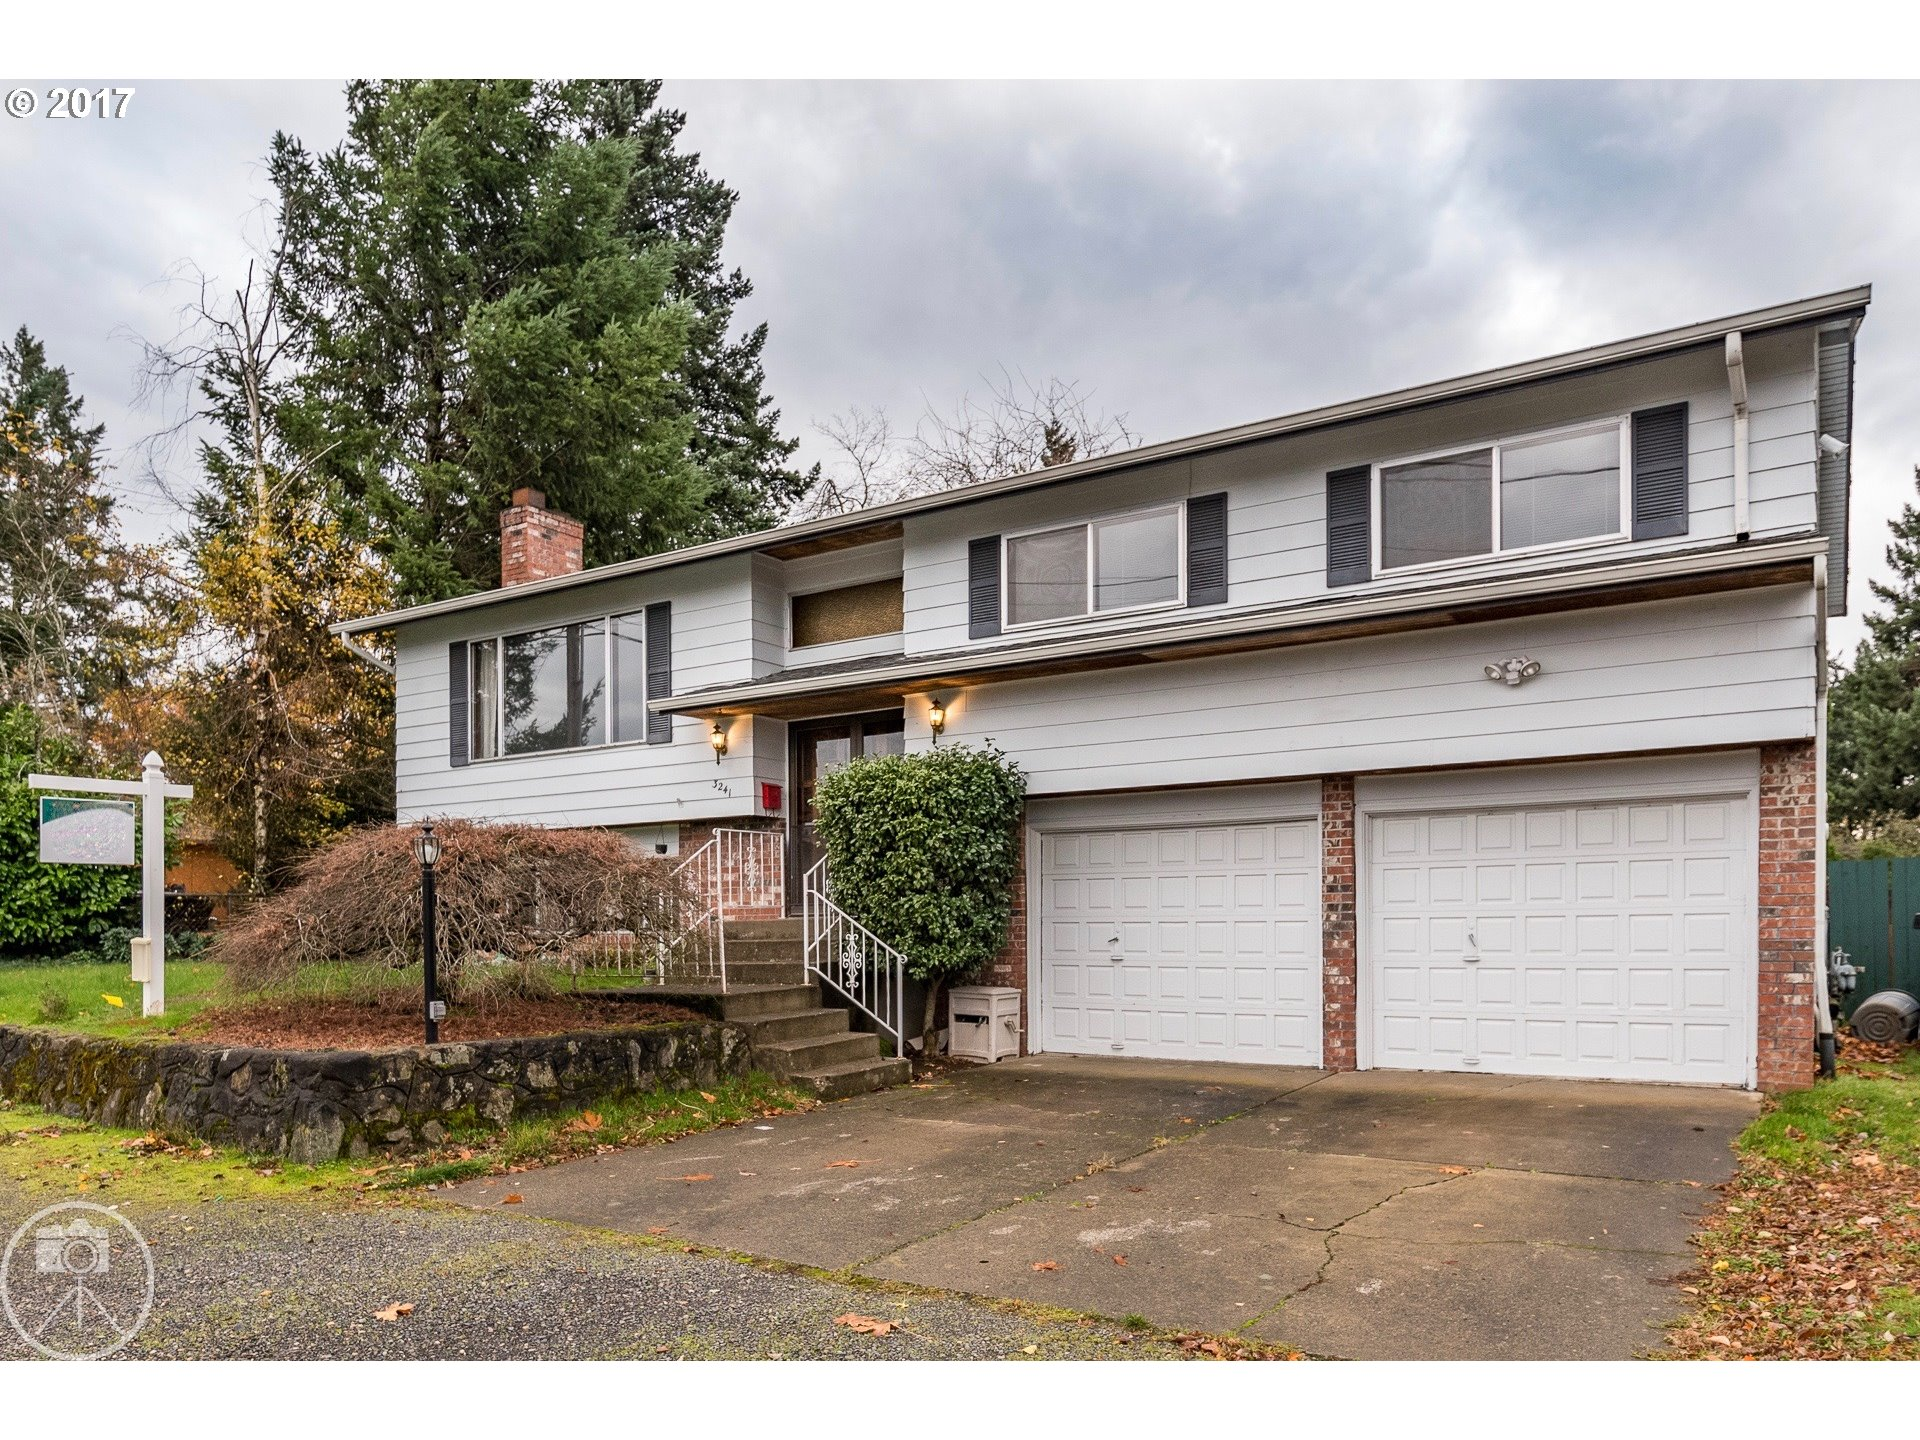 1916 sq. ft 4 bedrooms 2 bathrooms  House , Portland, OR